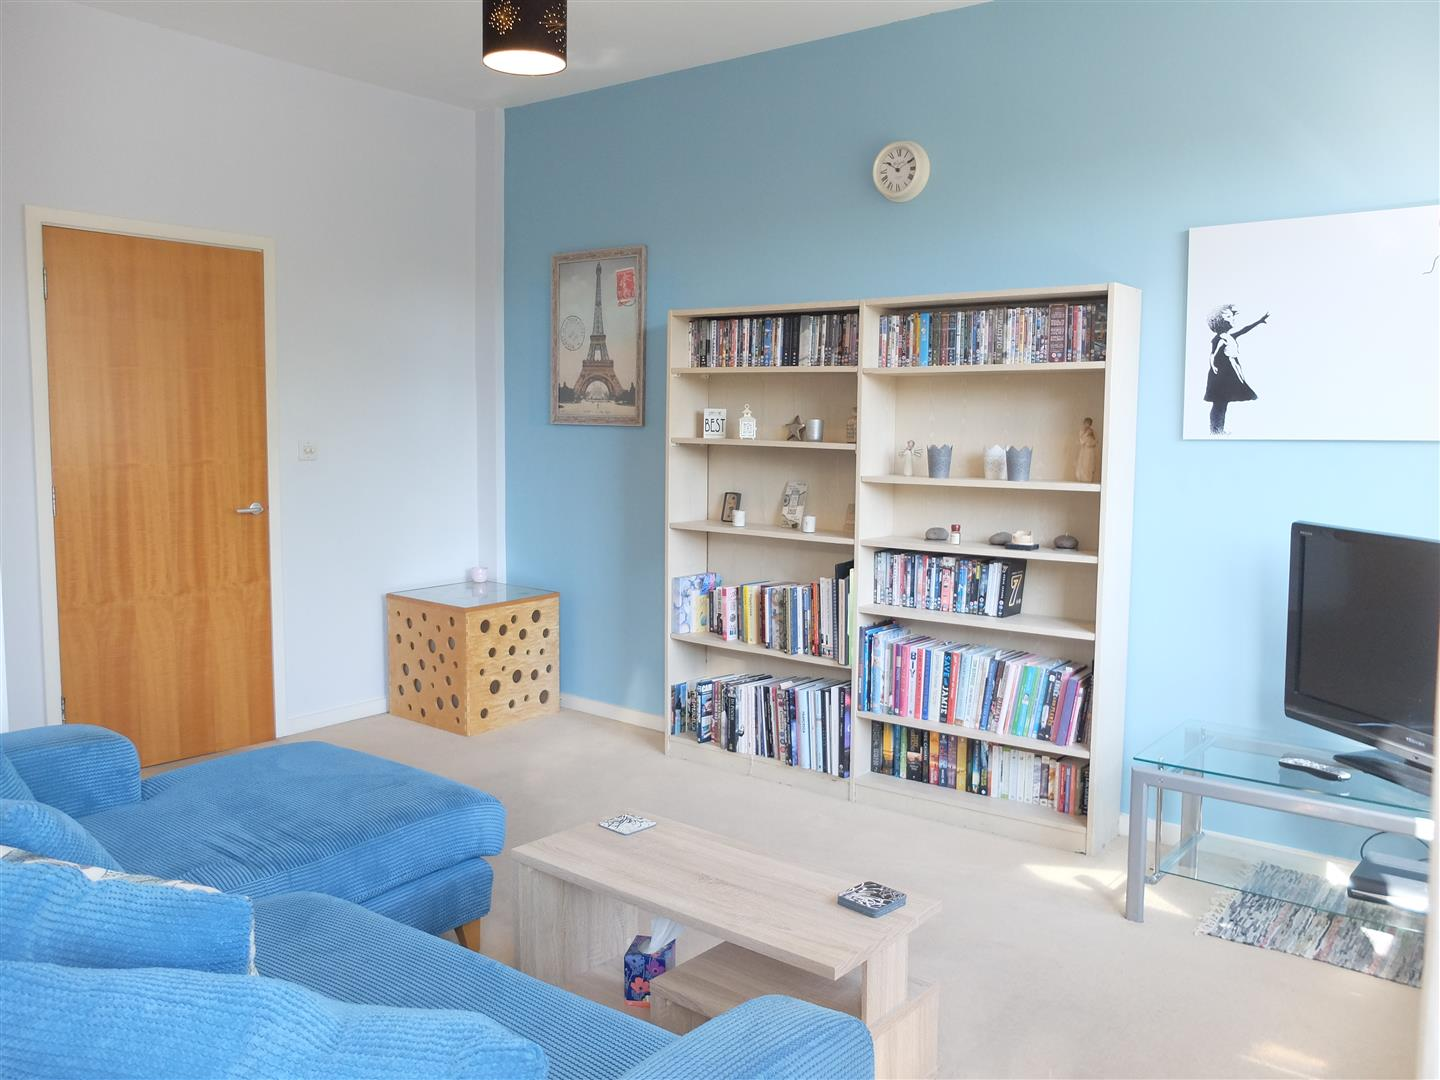 Flat 16 Willowbank Carlisle 2 Bedrooms Flat For Sale